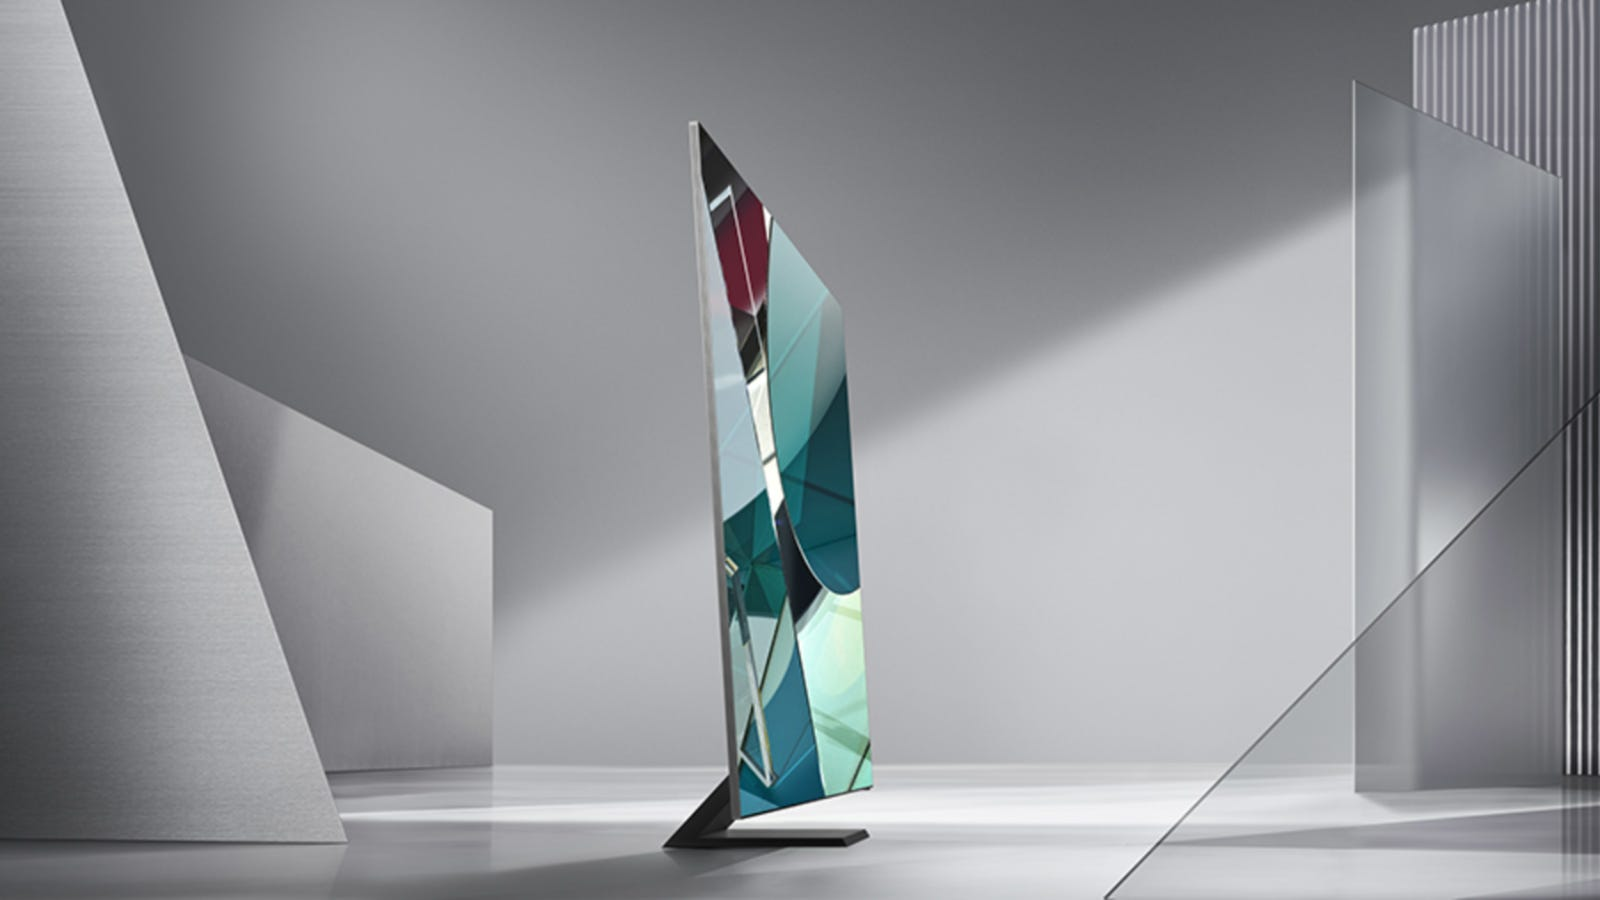 Samsung Q950TS 8K TV from the side